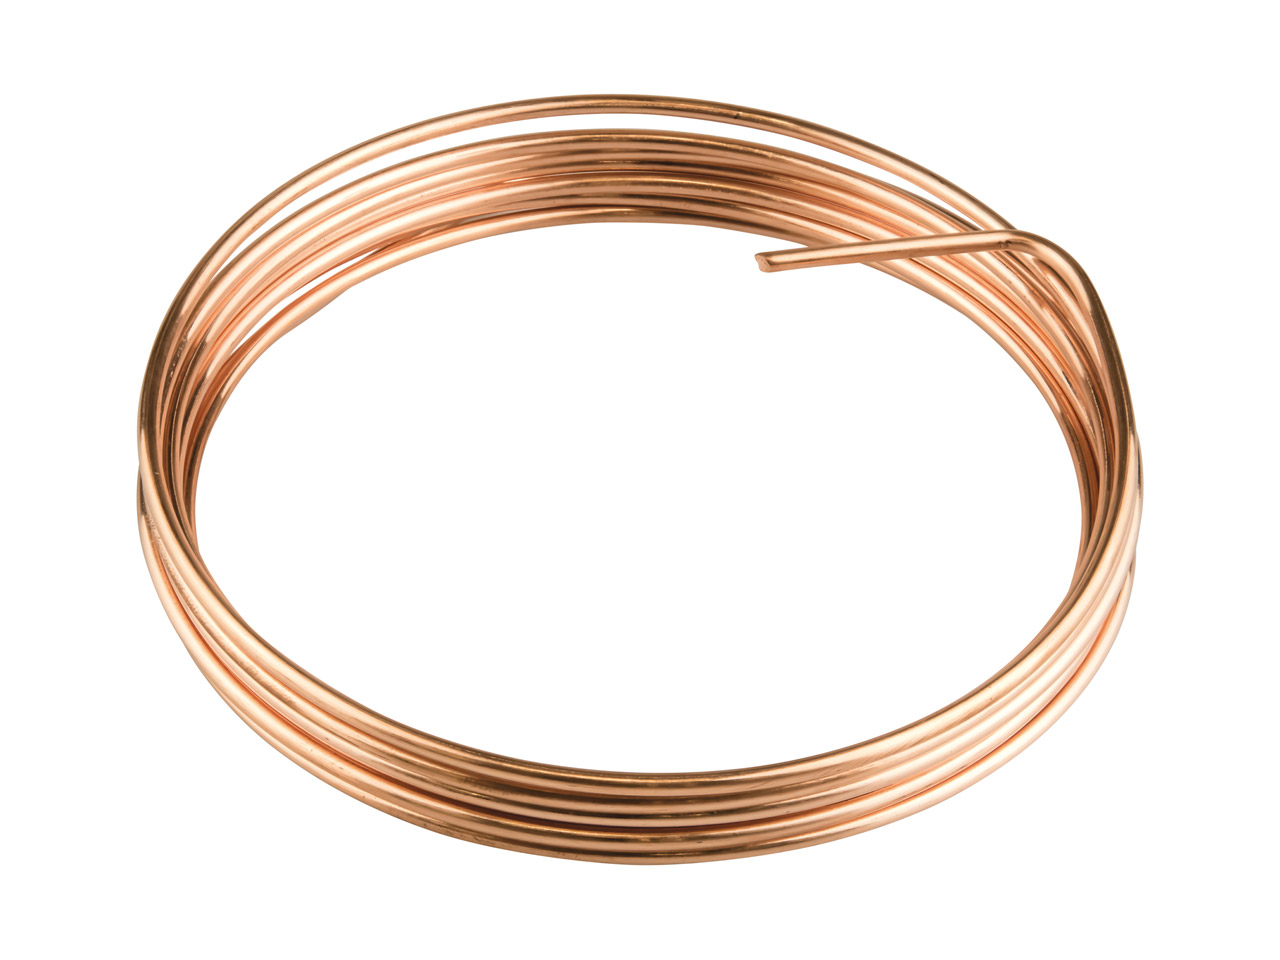 Copper Round Wire 1.2mm X 3m Fully Annealed